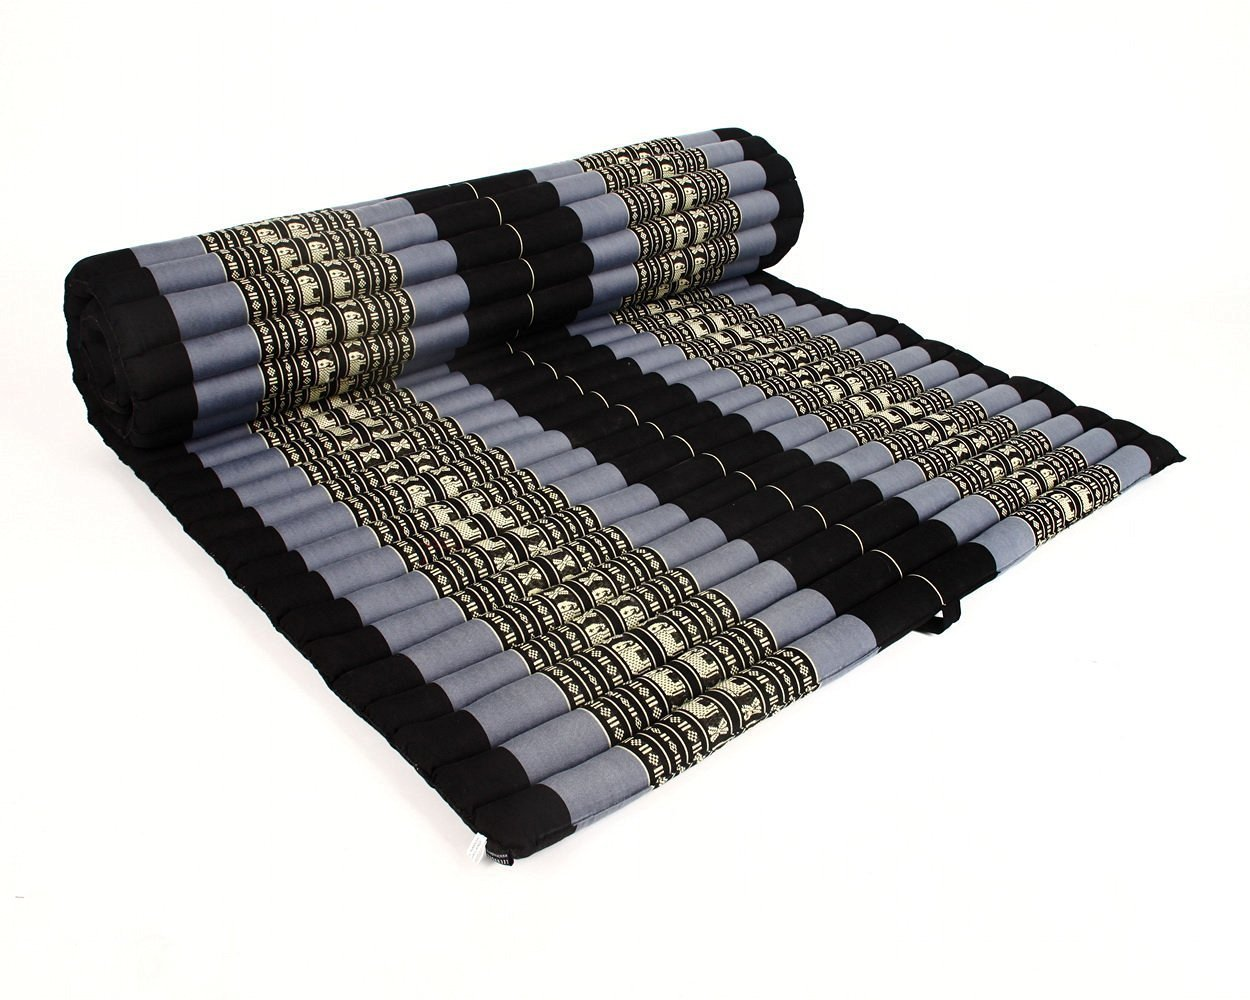 Design by UnseenThailand Roll Up Thai Mattress, Kapok Fabric, Premium Double Stitched, 79x41x2 inches. (Black - Blue)